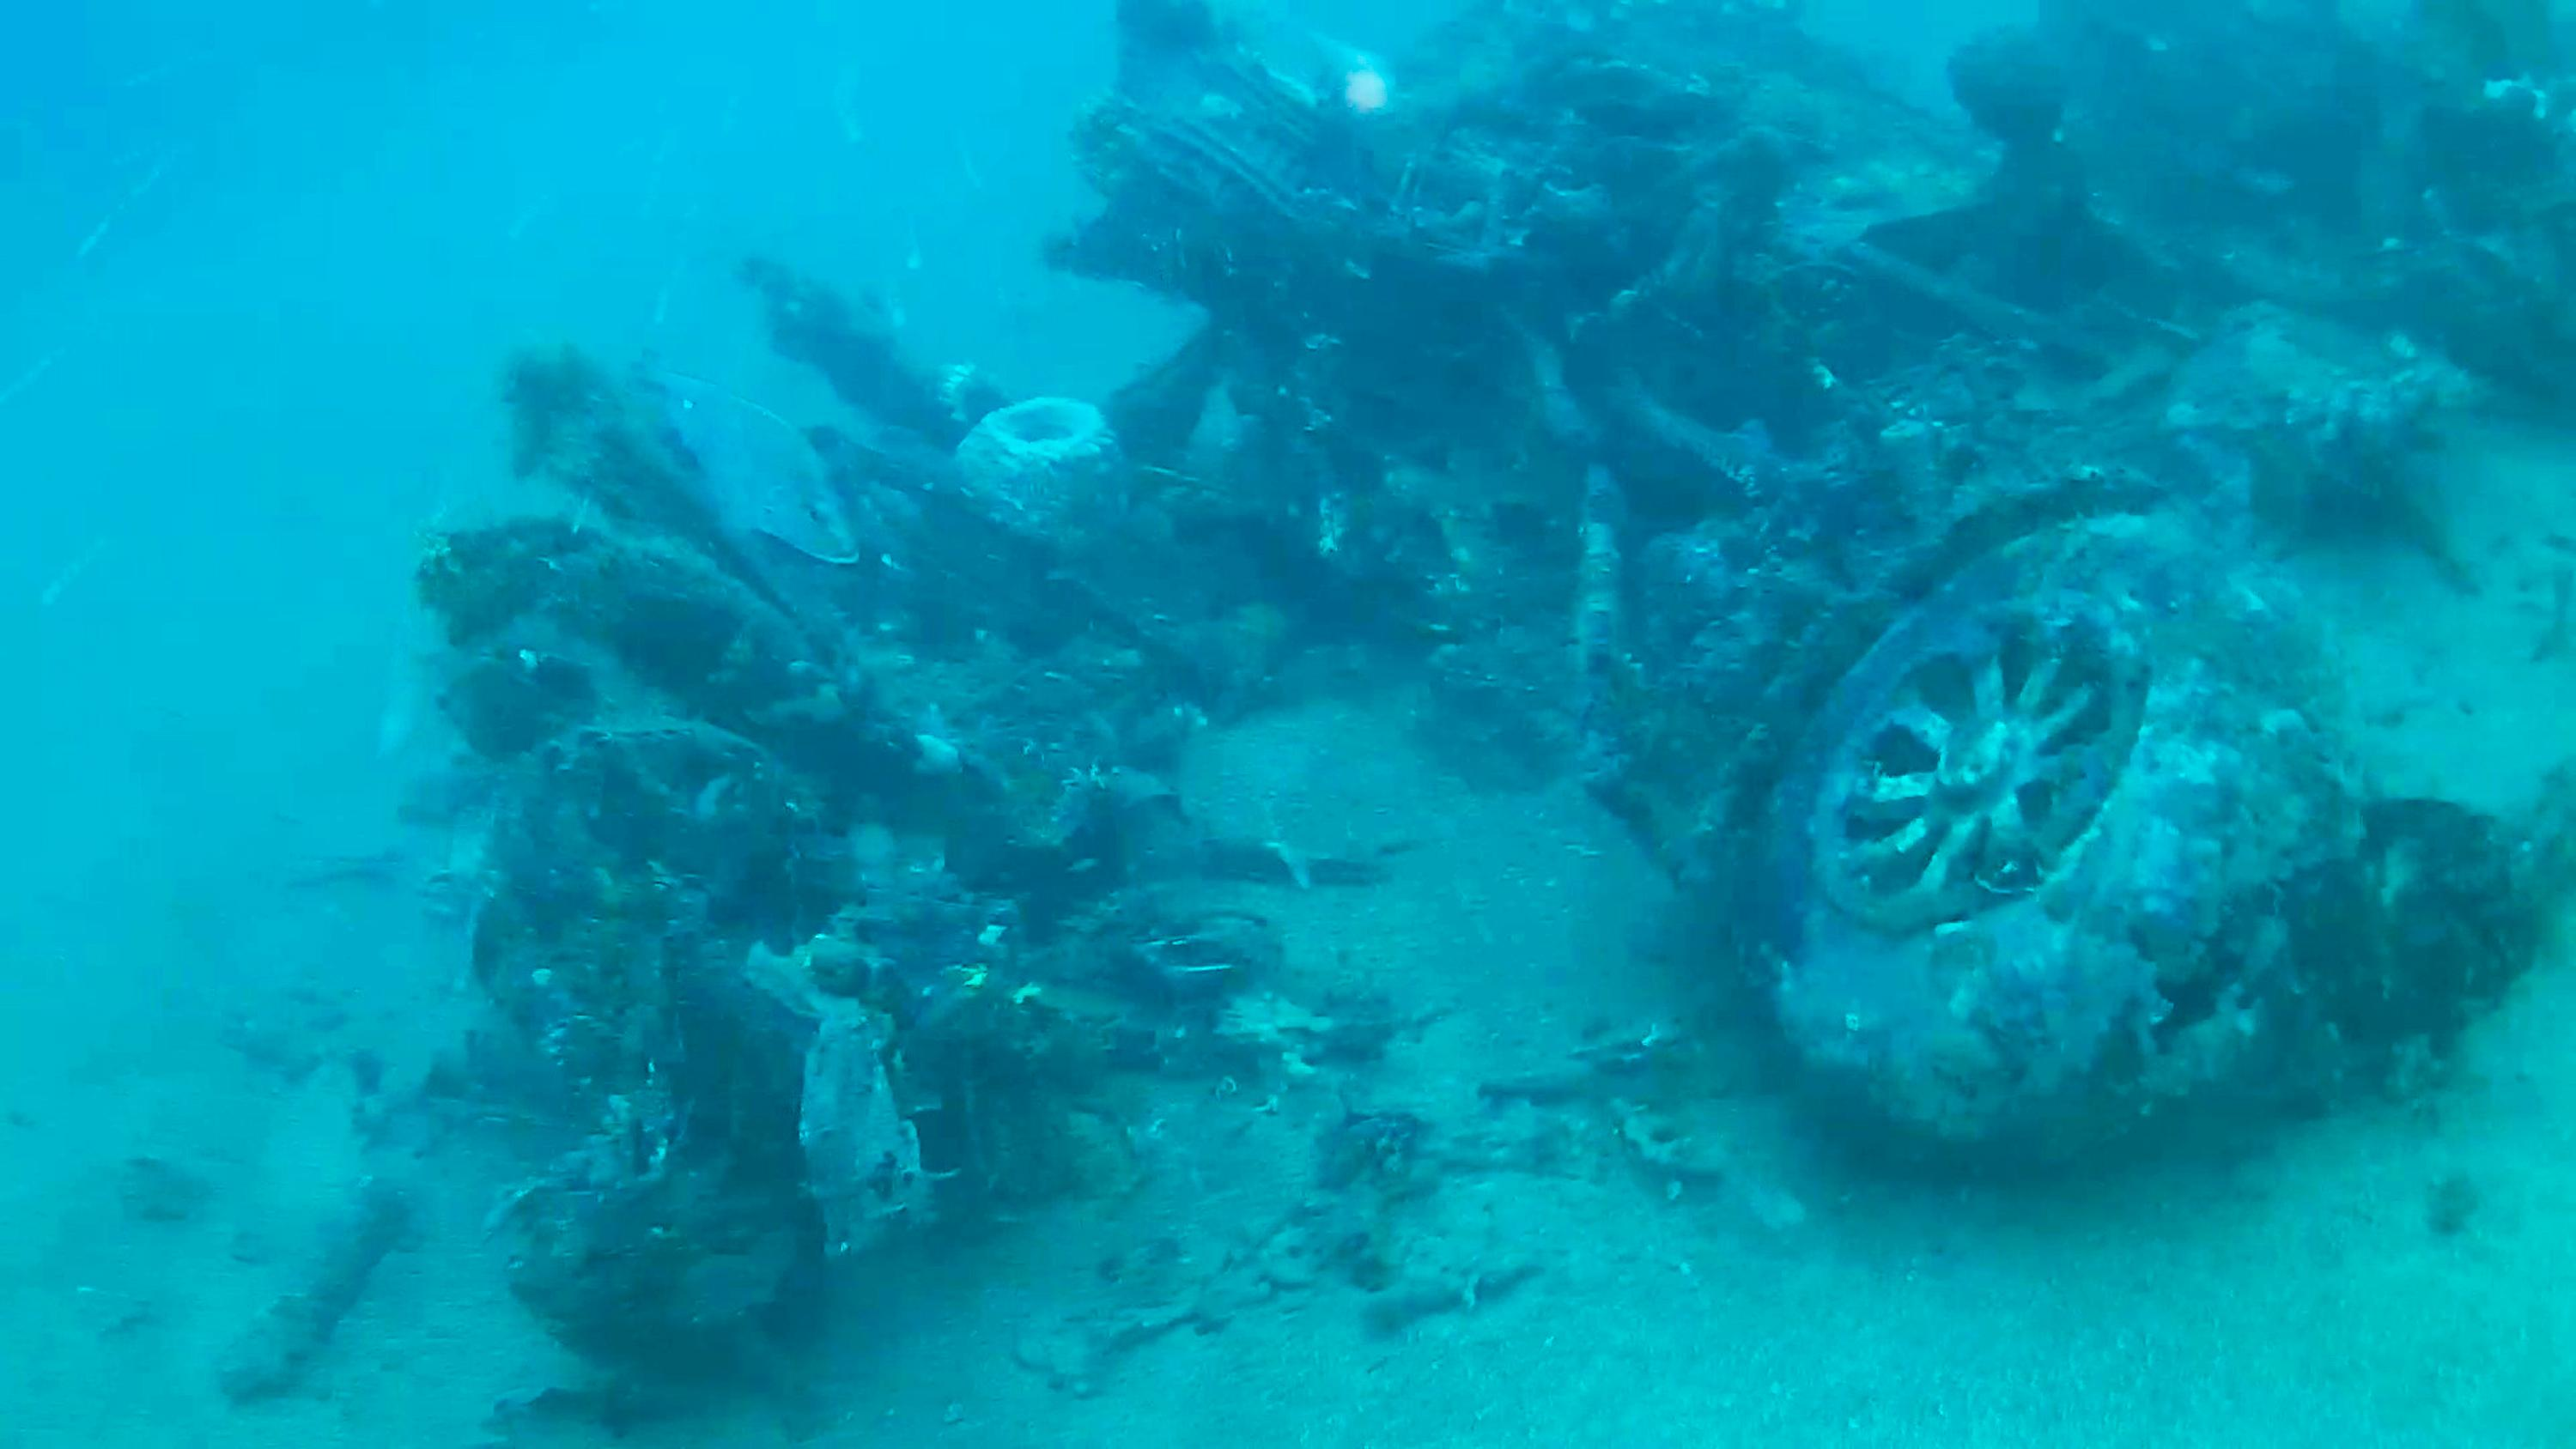 This October 2017 photo from a remote-controlled underwater camera provided by Project Recover shows the nose wheel of a B-24 bomber that crashed in Hansa Bay in what is now Papua New Guinea during World War II. When Tom Kelly's relatives got word that his bomber had been found, a wave of exhilaration mixed with grief washed over family members. Although relatives who never met Kelly had pieced much of his life story together over the years, they never knew what happened when his plane was shot down off the coast of Papua New Guinea in 1944. They got their answer recently when the group Project Recover found the B-24 bomber under 213 feet of water. (Project Recover via AP)